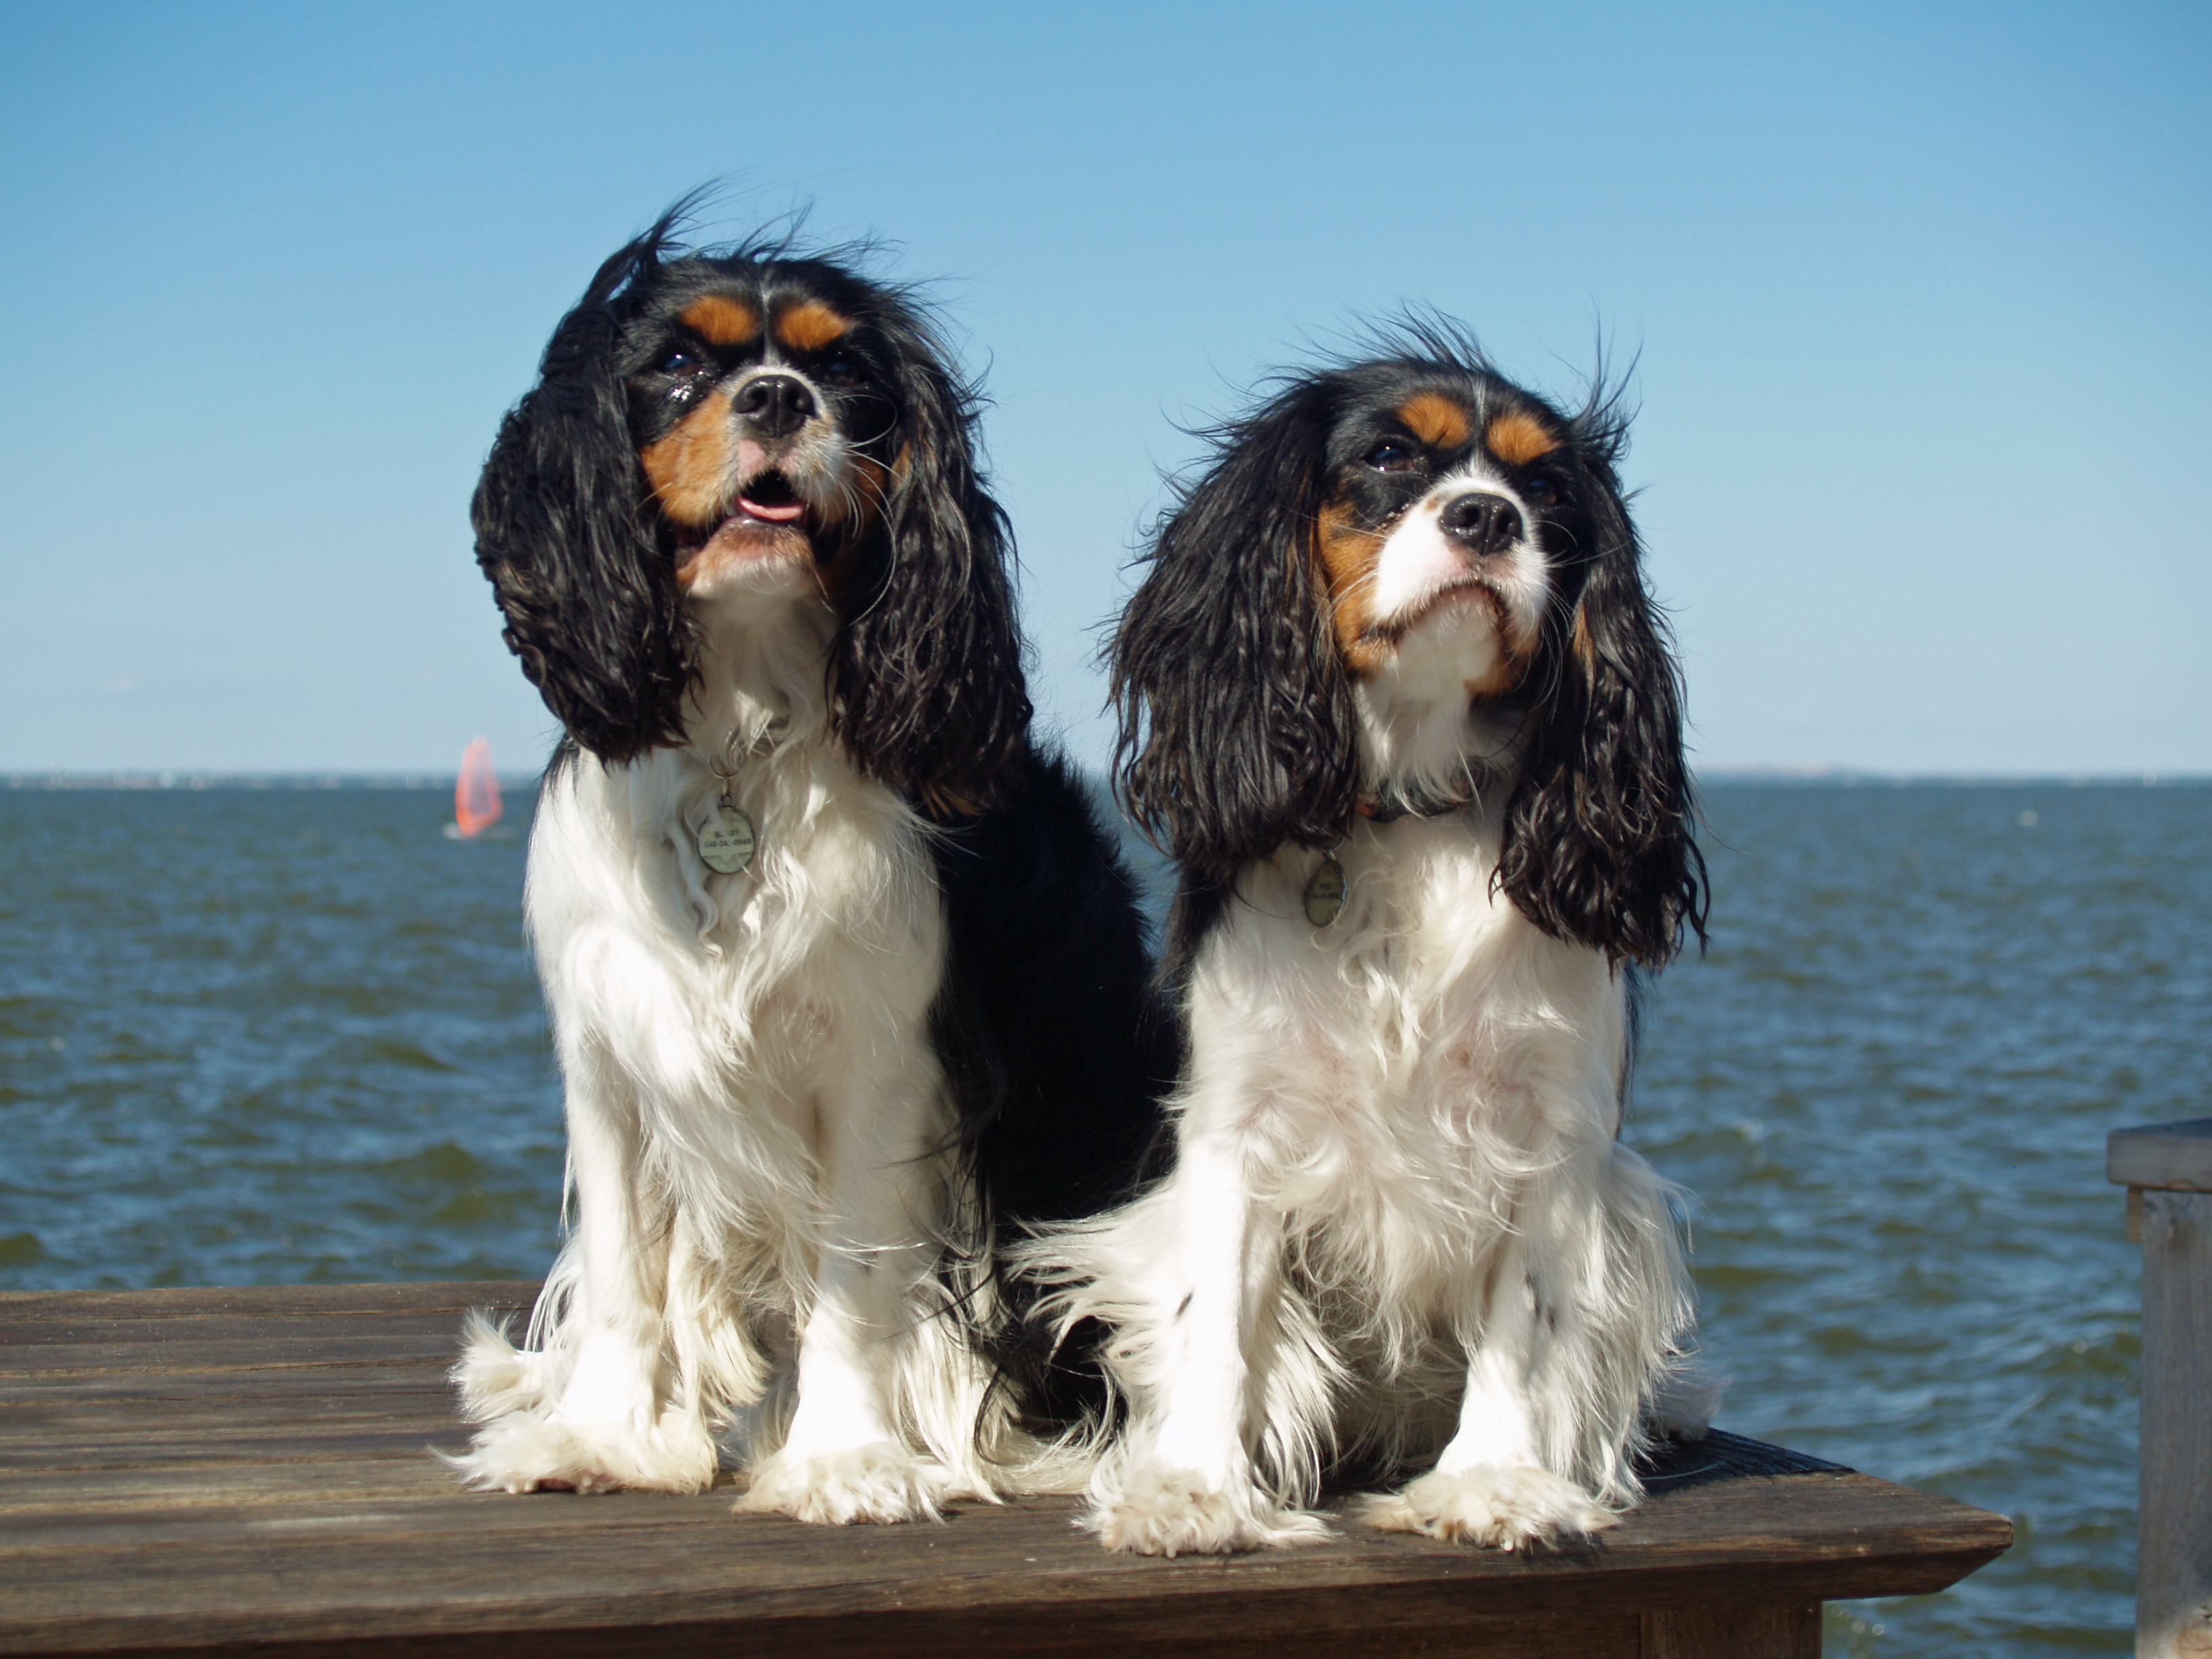 Filecavalier king charles spaniels 2821585840g wikimedia commons filecavalier king charles spaniels 2821585840g altavistaventures Image collections